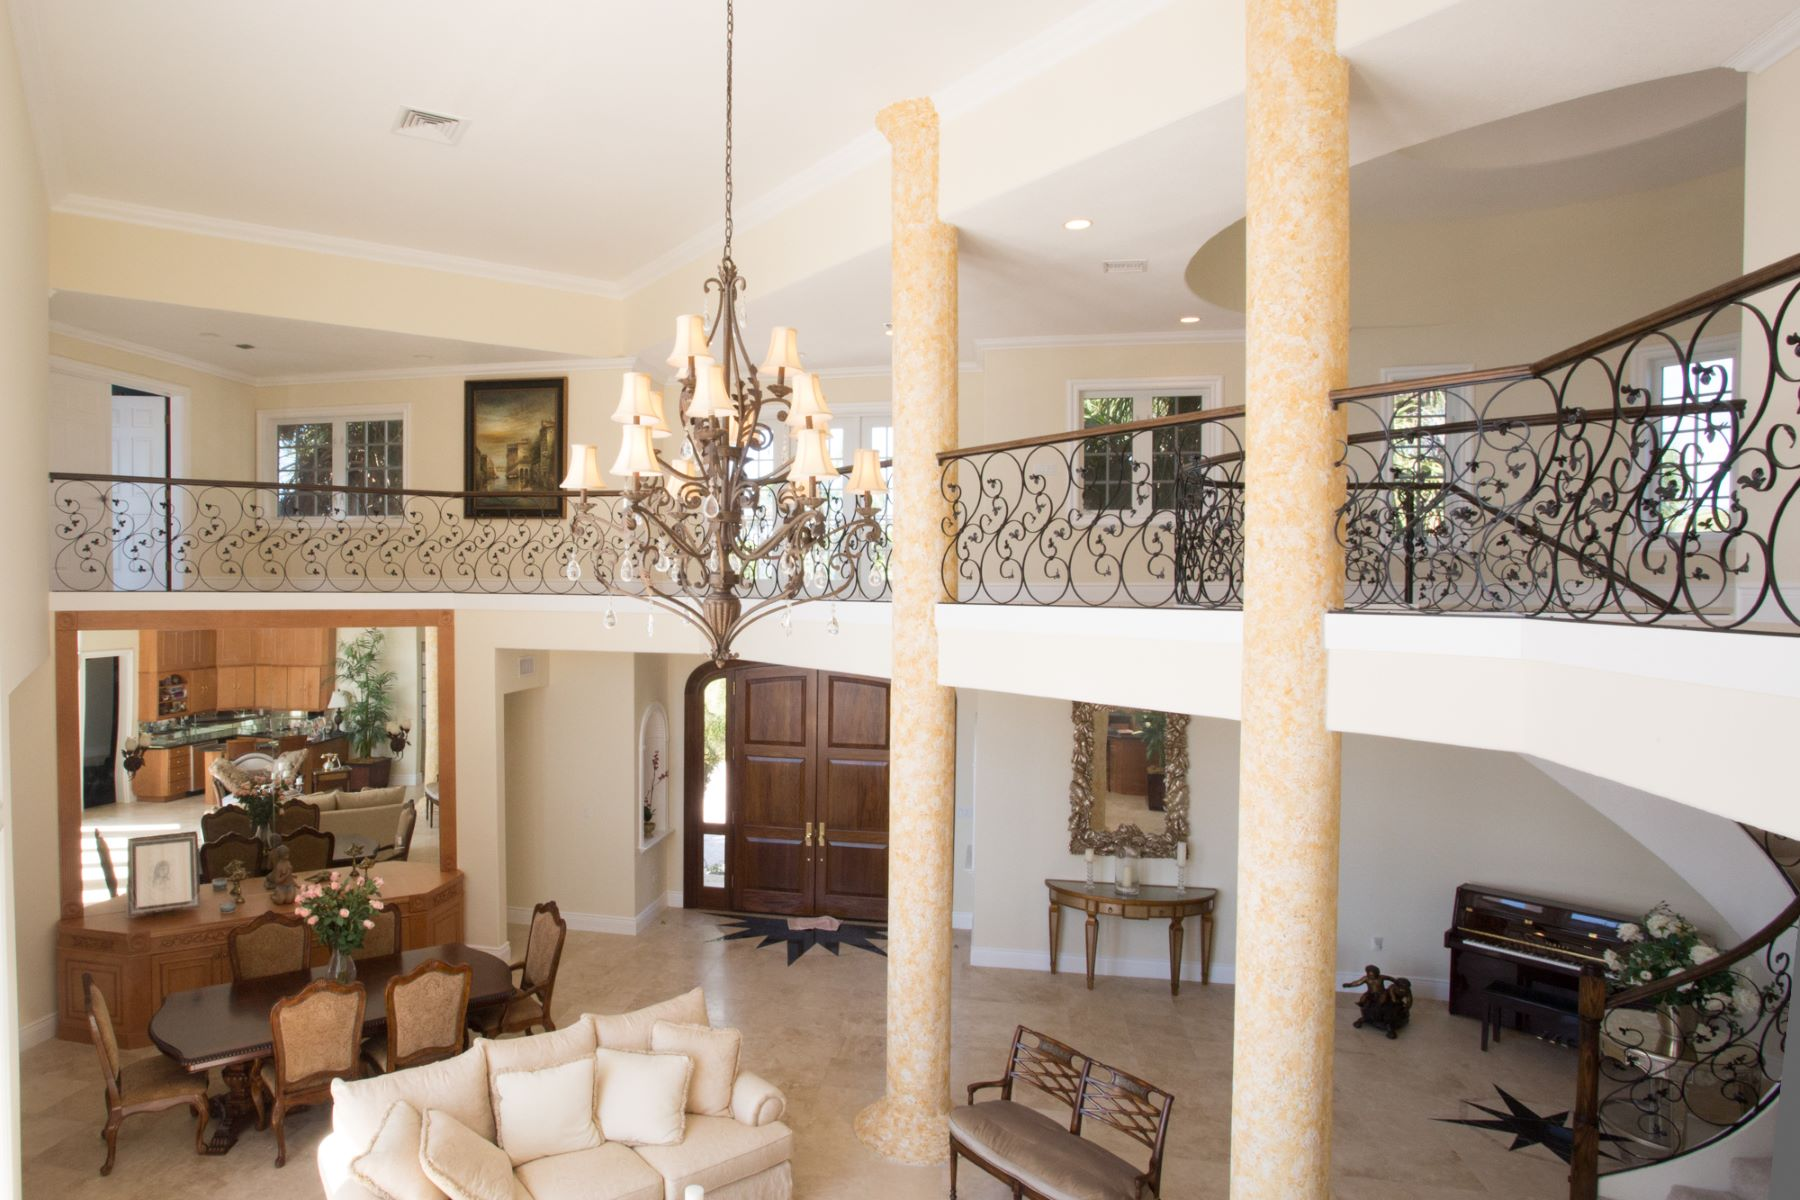 Additional photo for property listing at Far Horizon Far Horizon 346 Pedro Castle Rd Savannah, Gran Caimán KY1 Islas Caimán